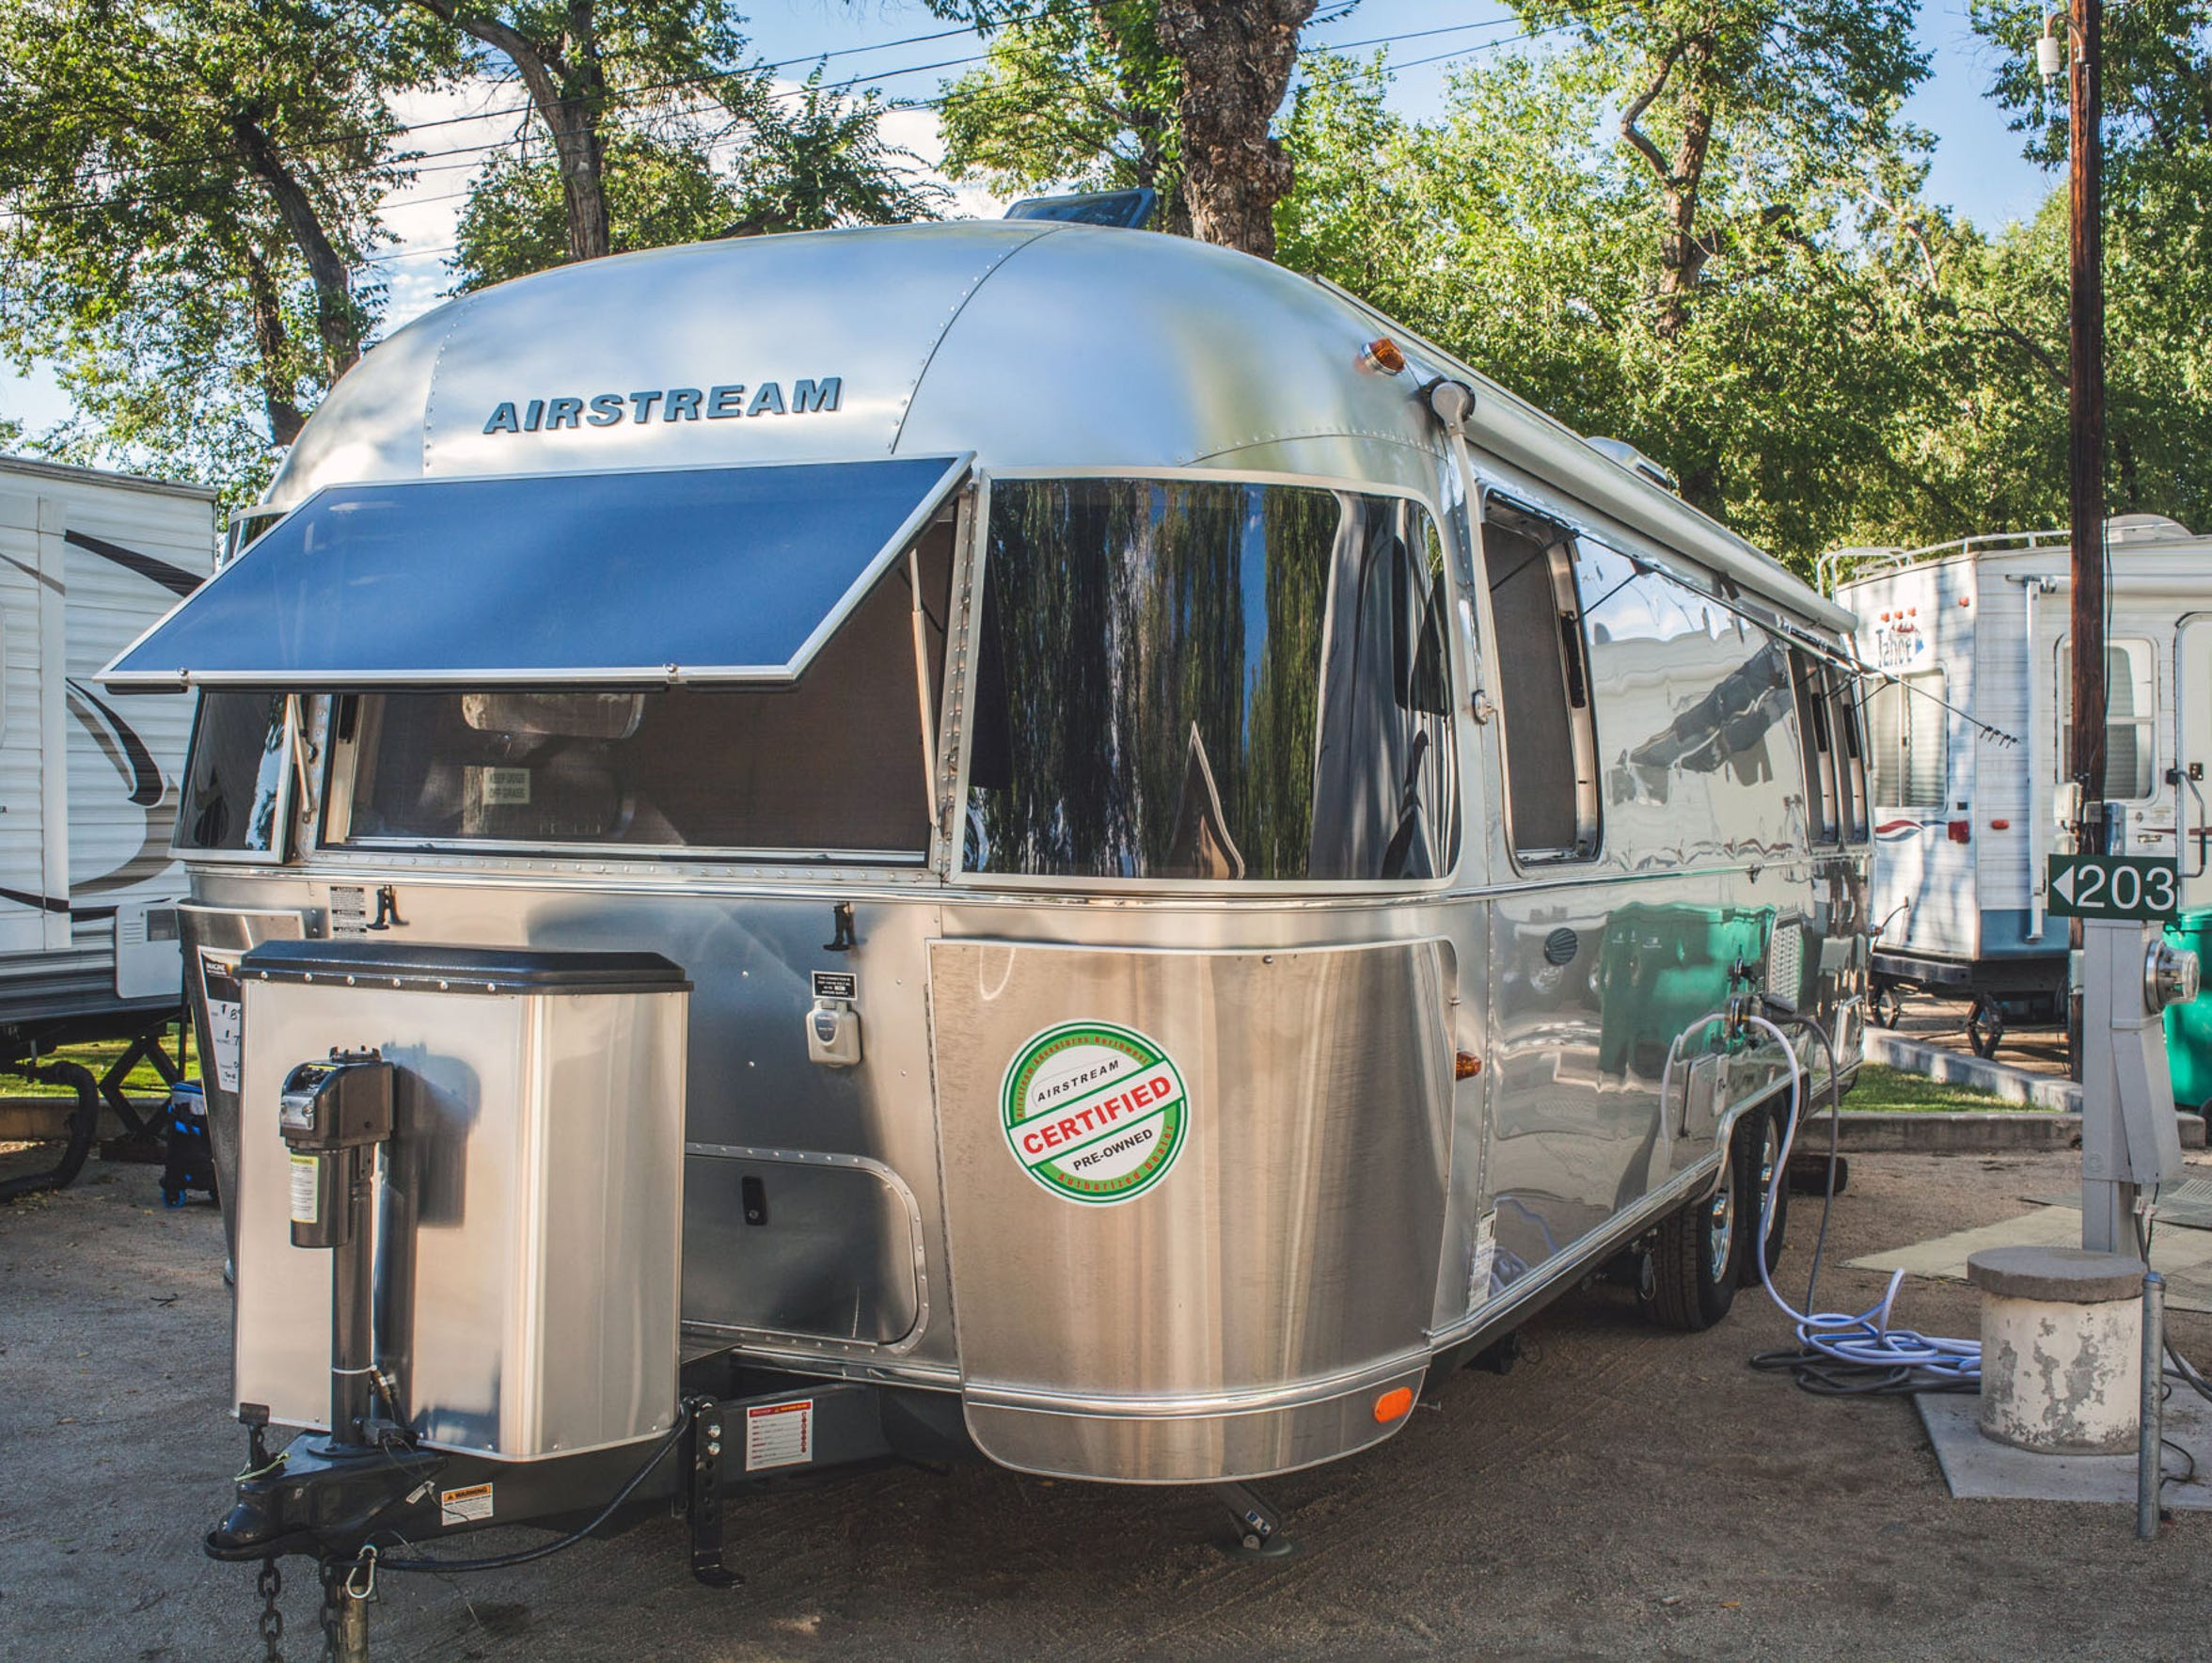 An Airstream trailer at River West Resort RV and trailer